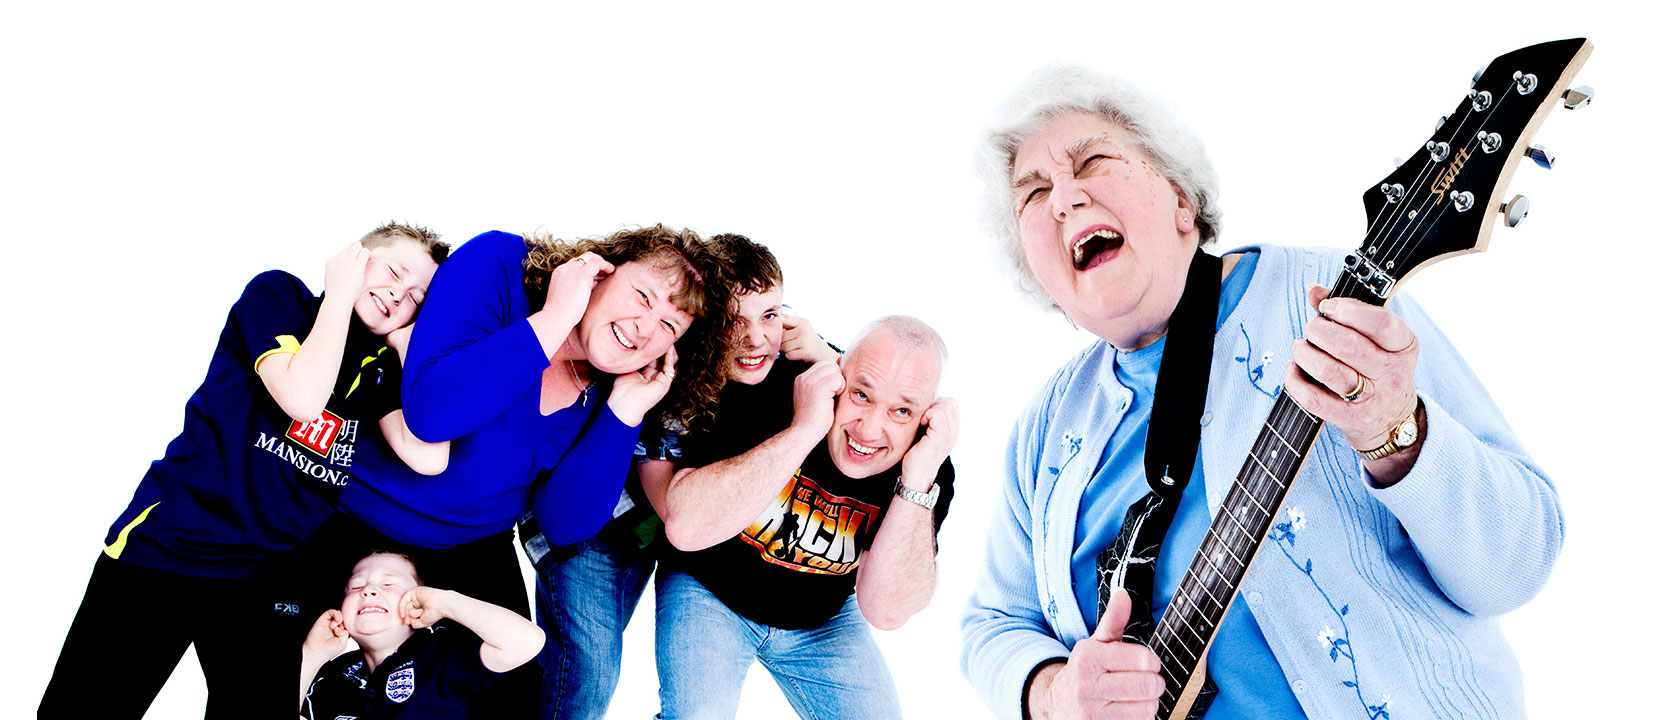 Grandma rocking it on the guitar while the family cowers from the noise